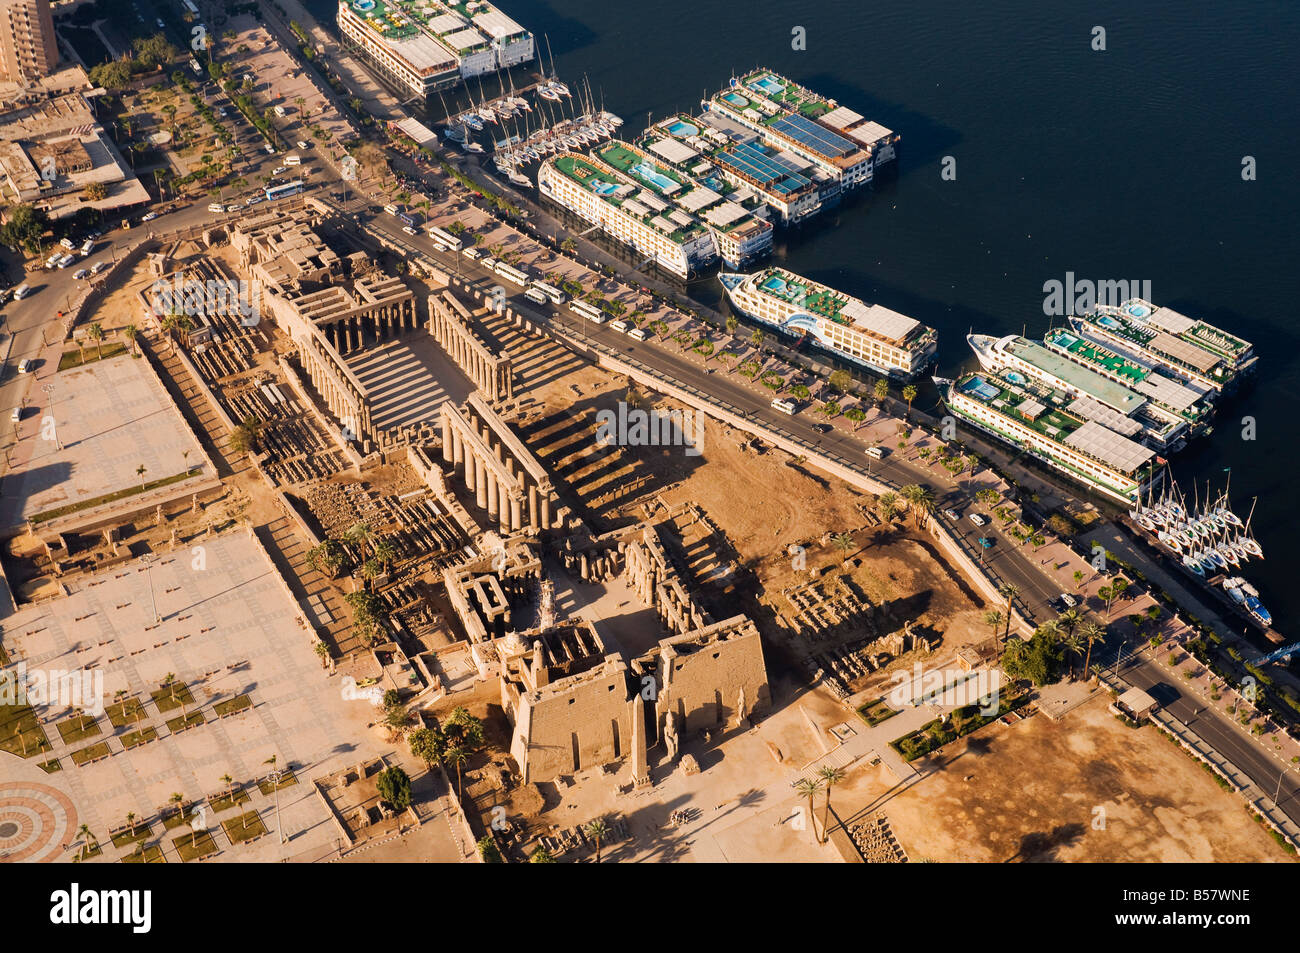 Aerial View Of Luxor Temple And The River Nile, Luxor